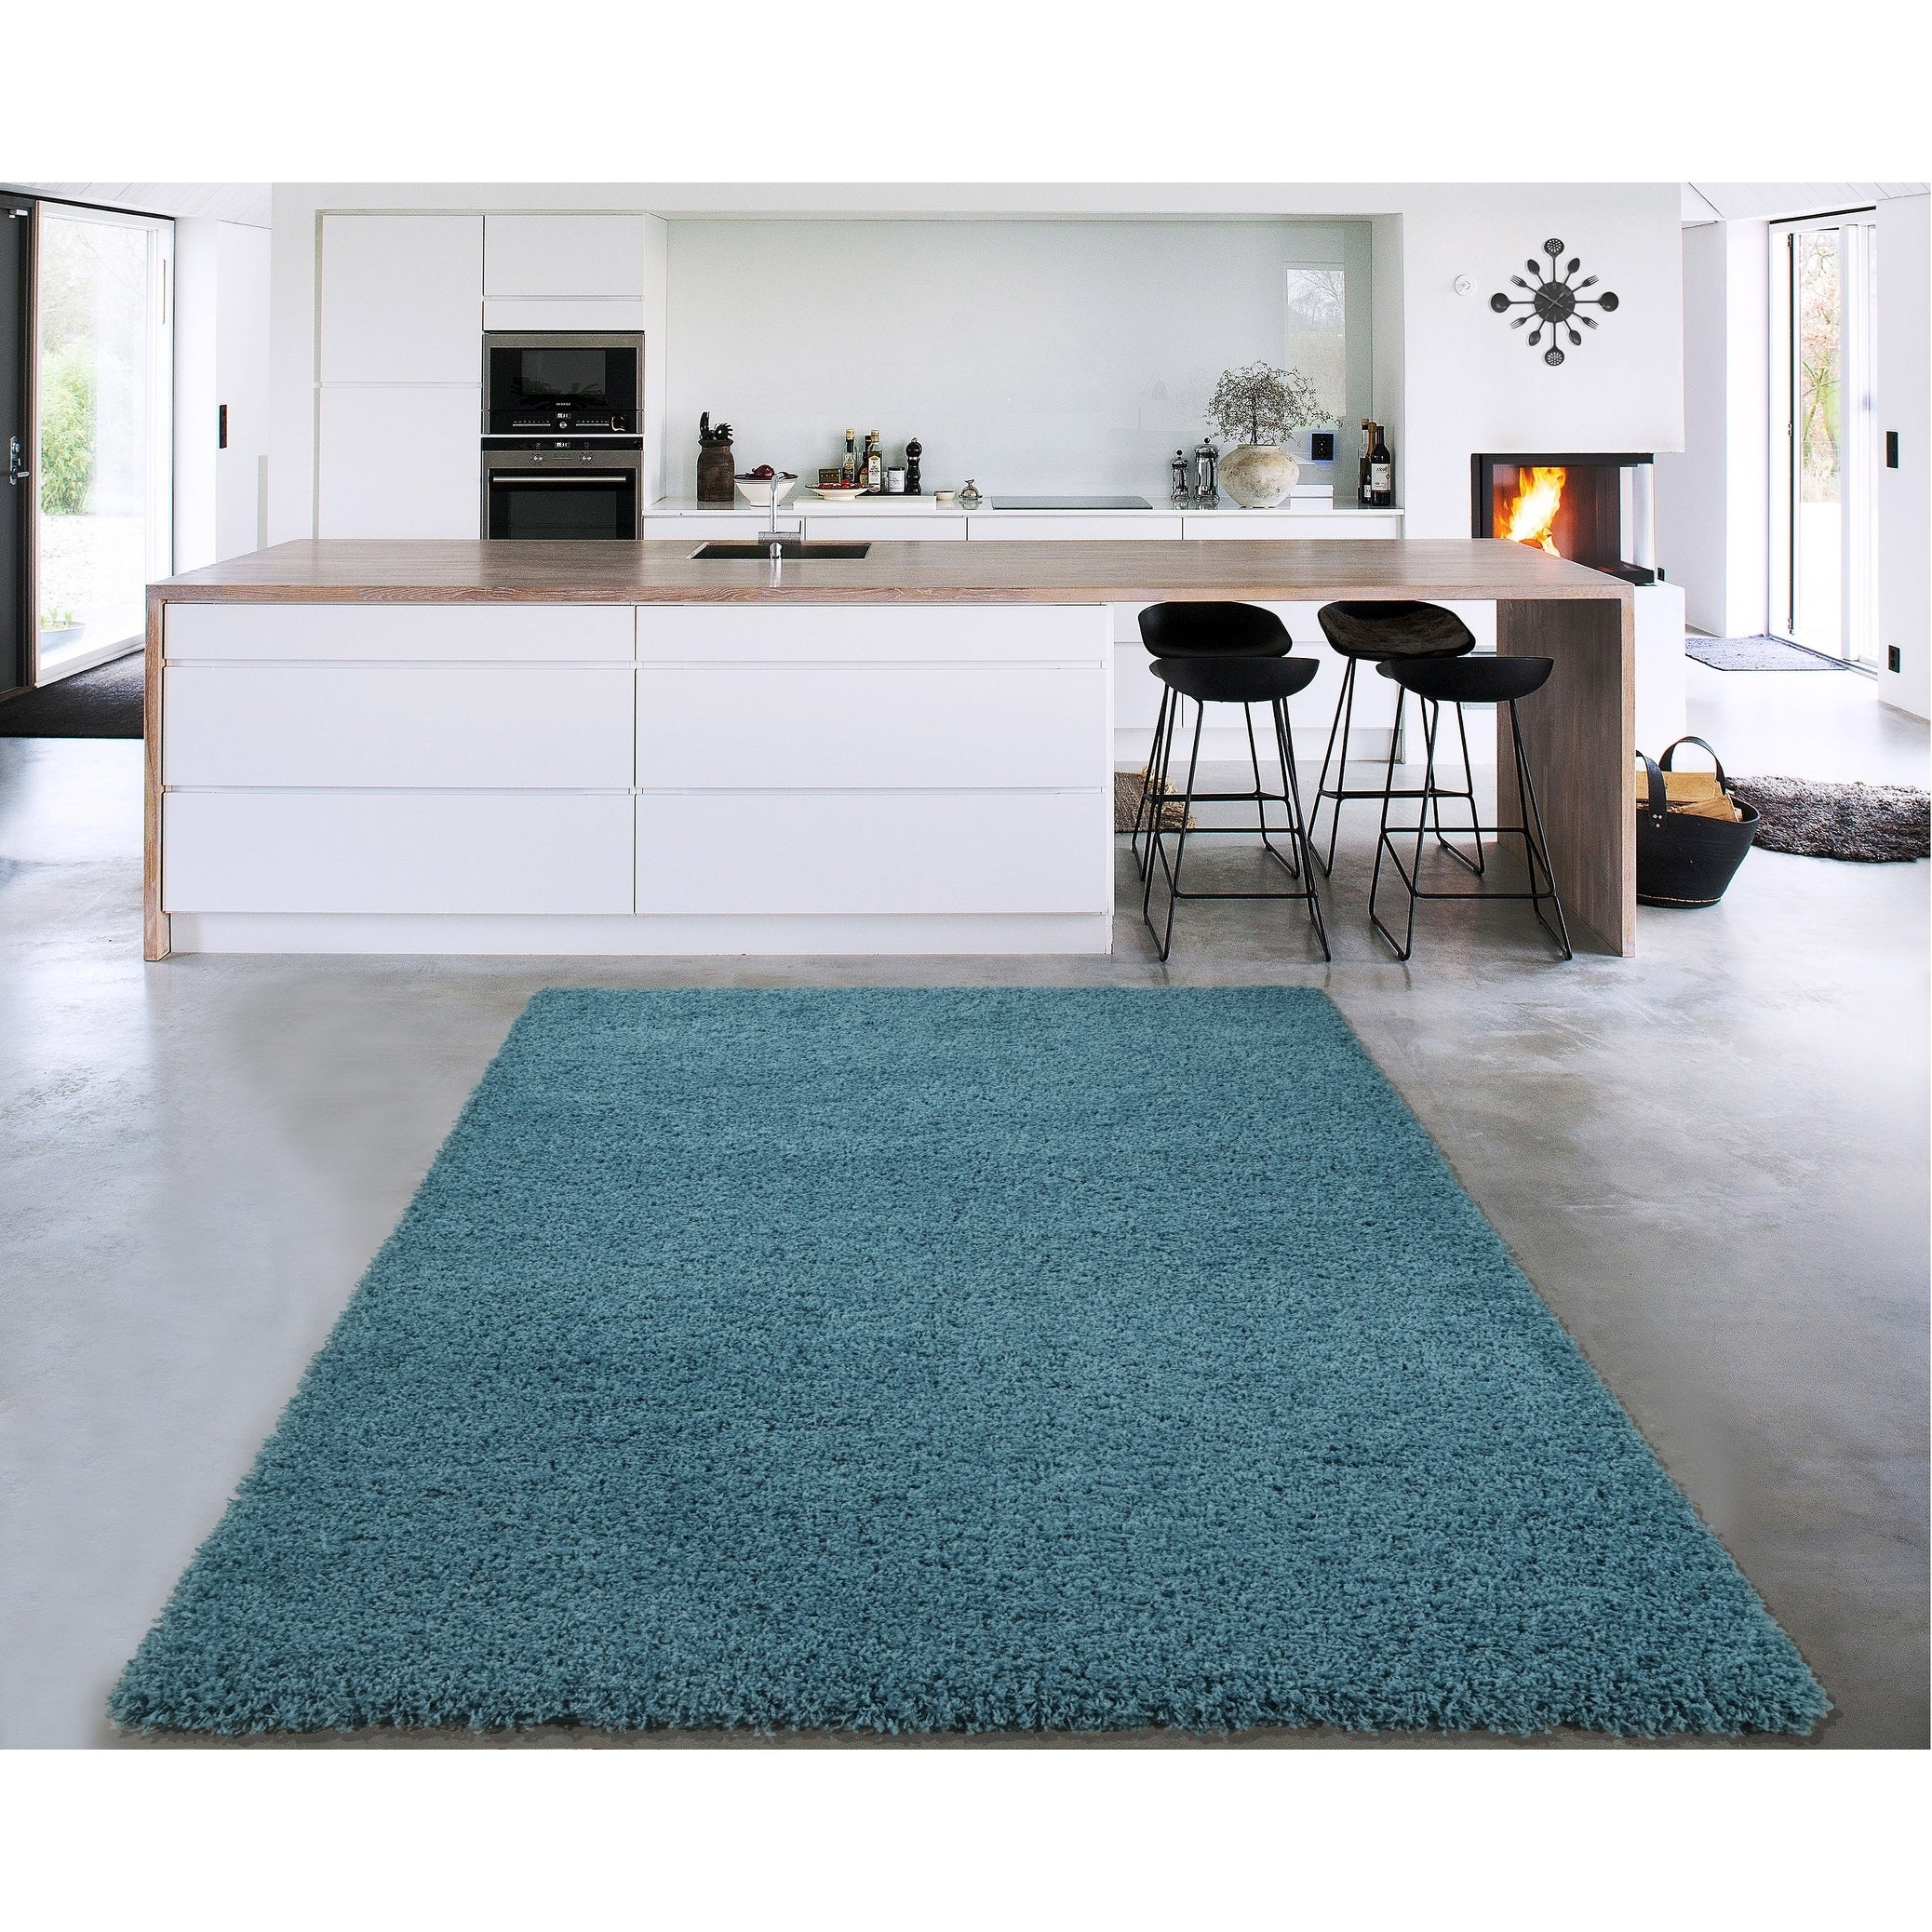 Shop Sweet Home Stores Cozy Shag Collection Accent Rug (3\' x 5 ...